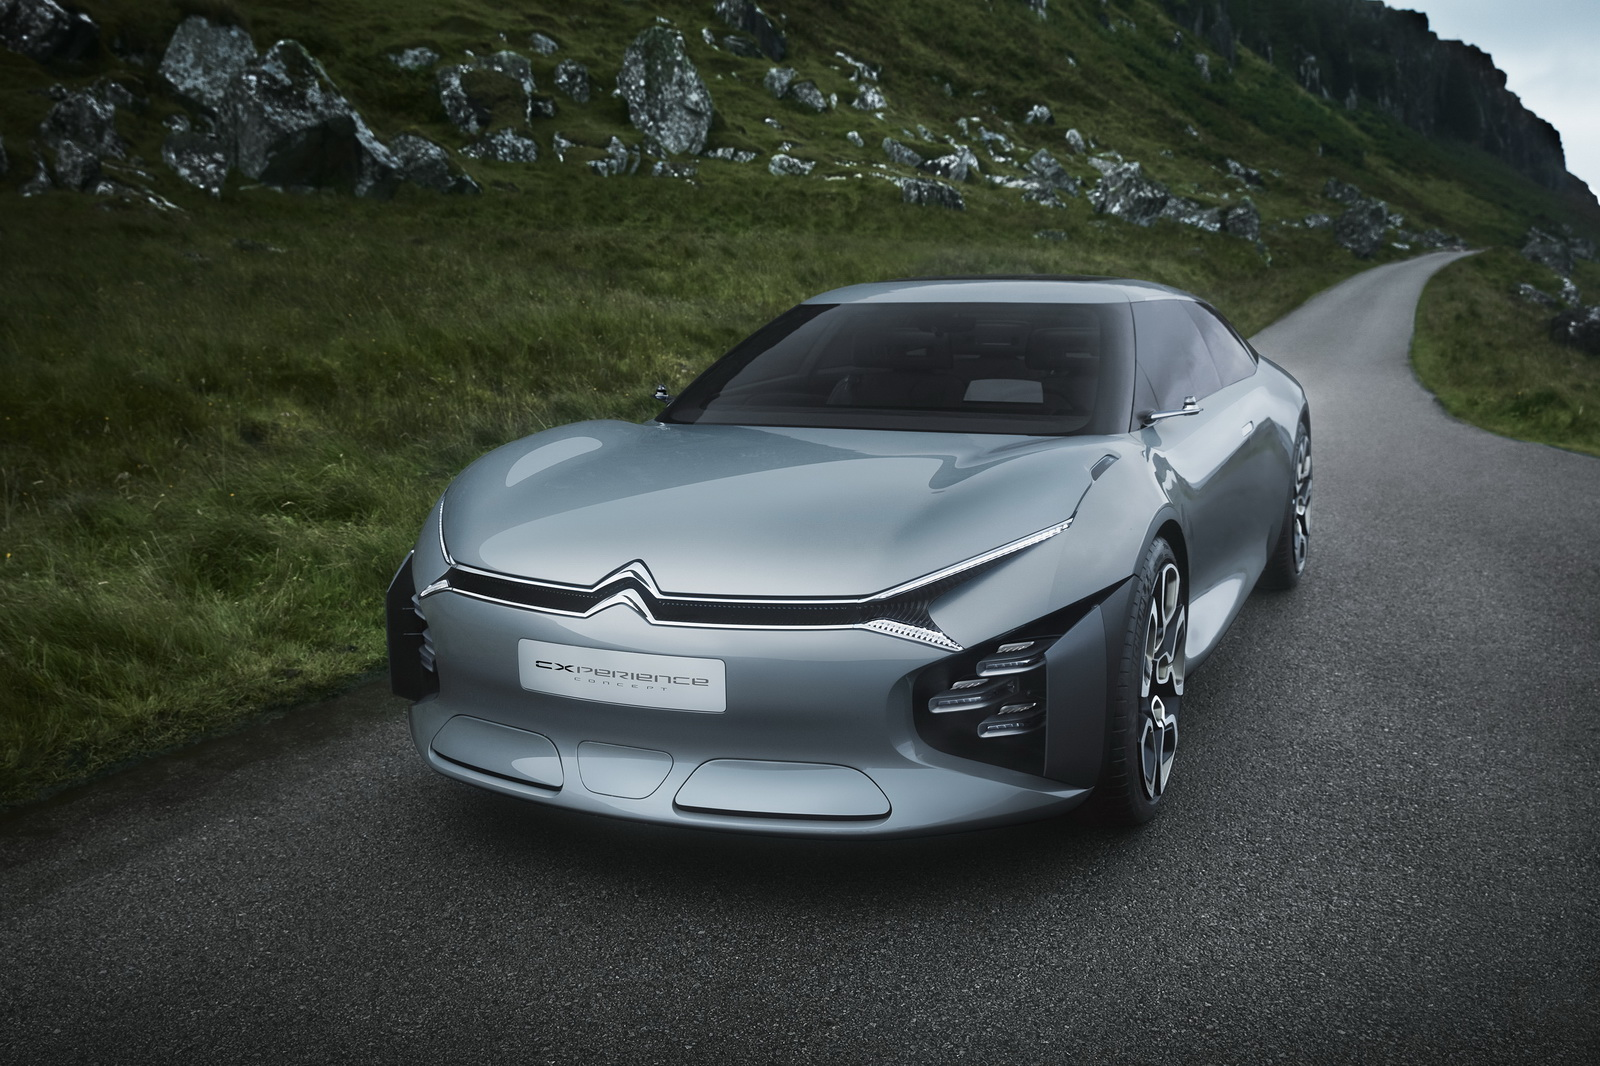 All New Vellfire 2020 Brand Camry 2017 Price Citroen C5 Coming In Says Companys Boss